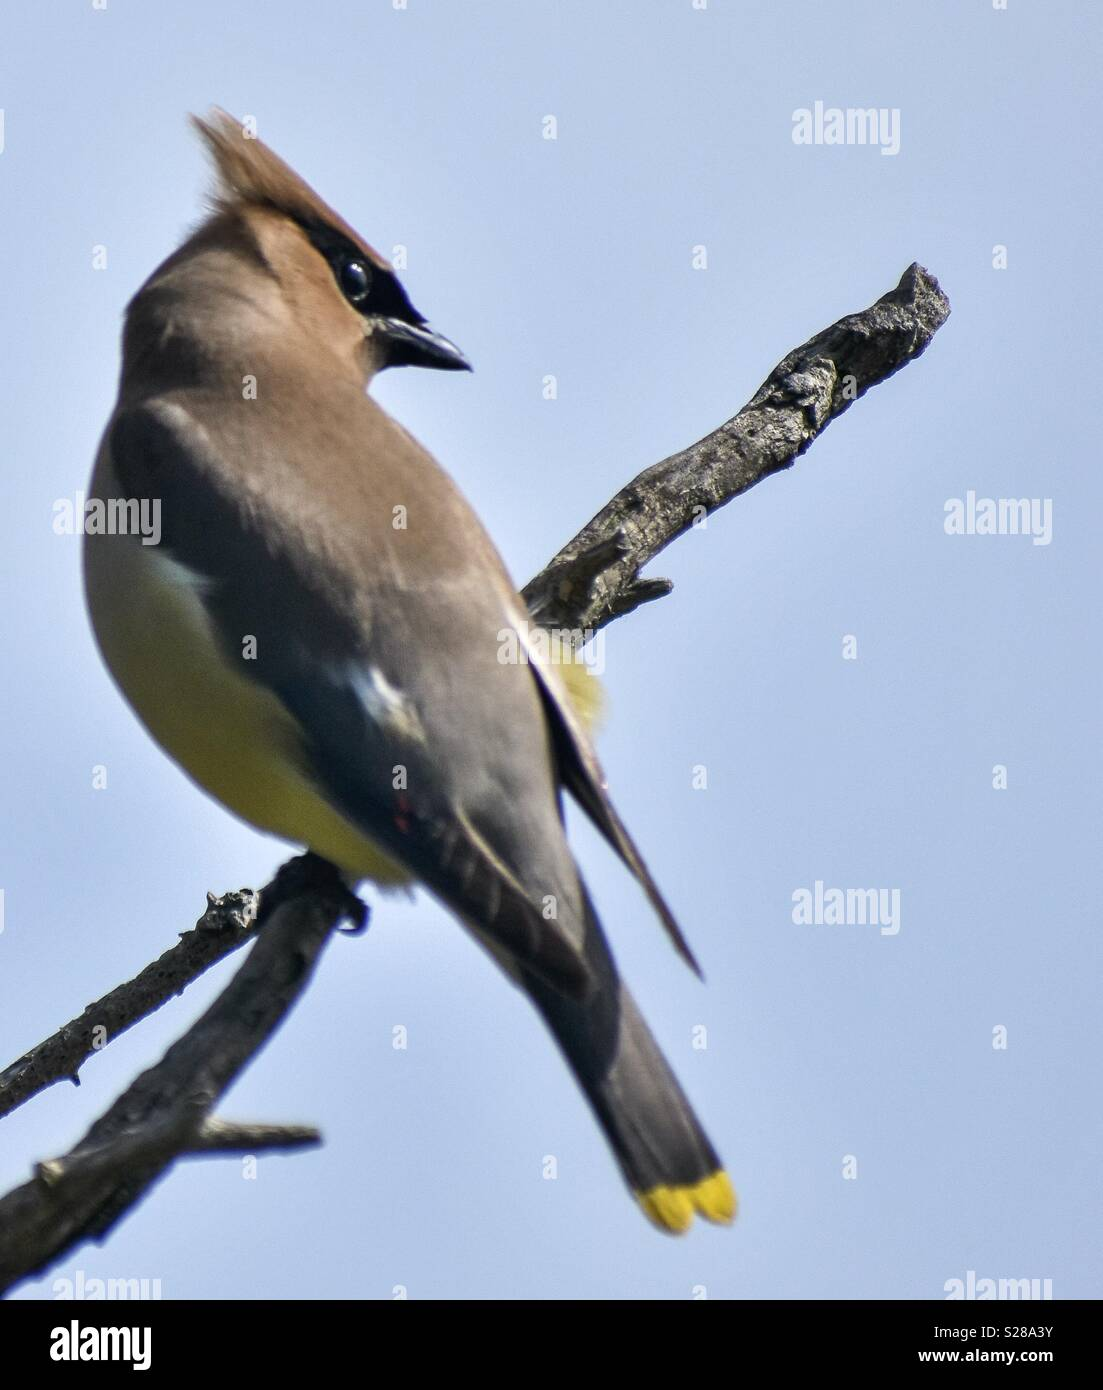 Cedar Waxwing at Spectacle Island, MA. - Stock Image